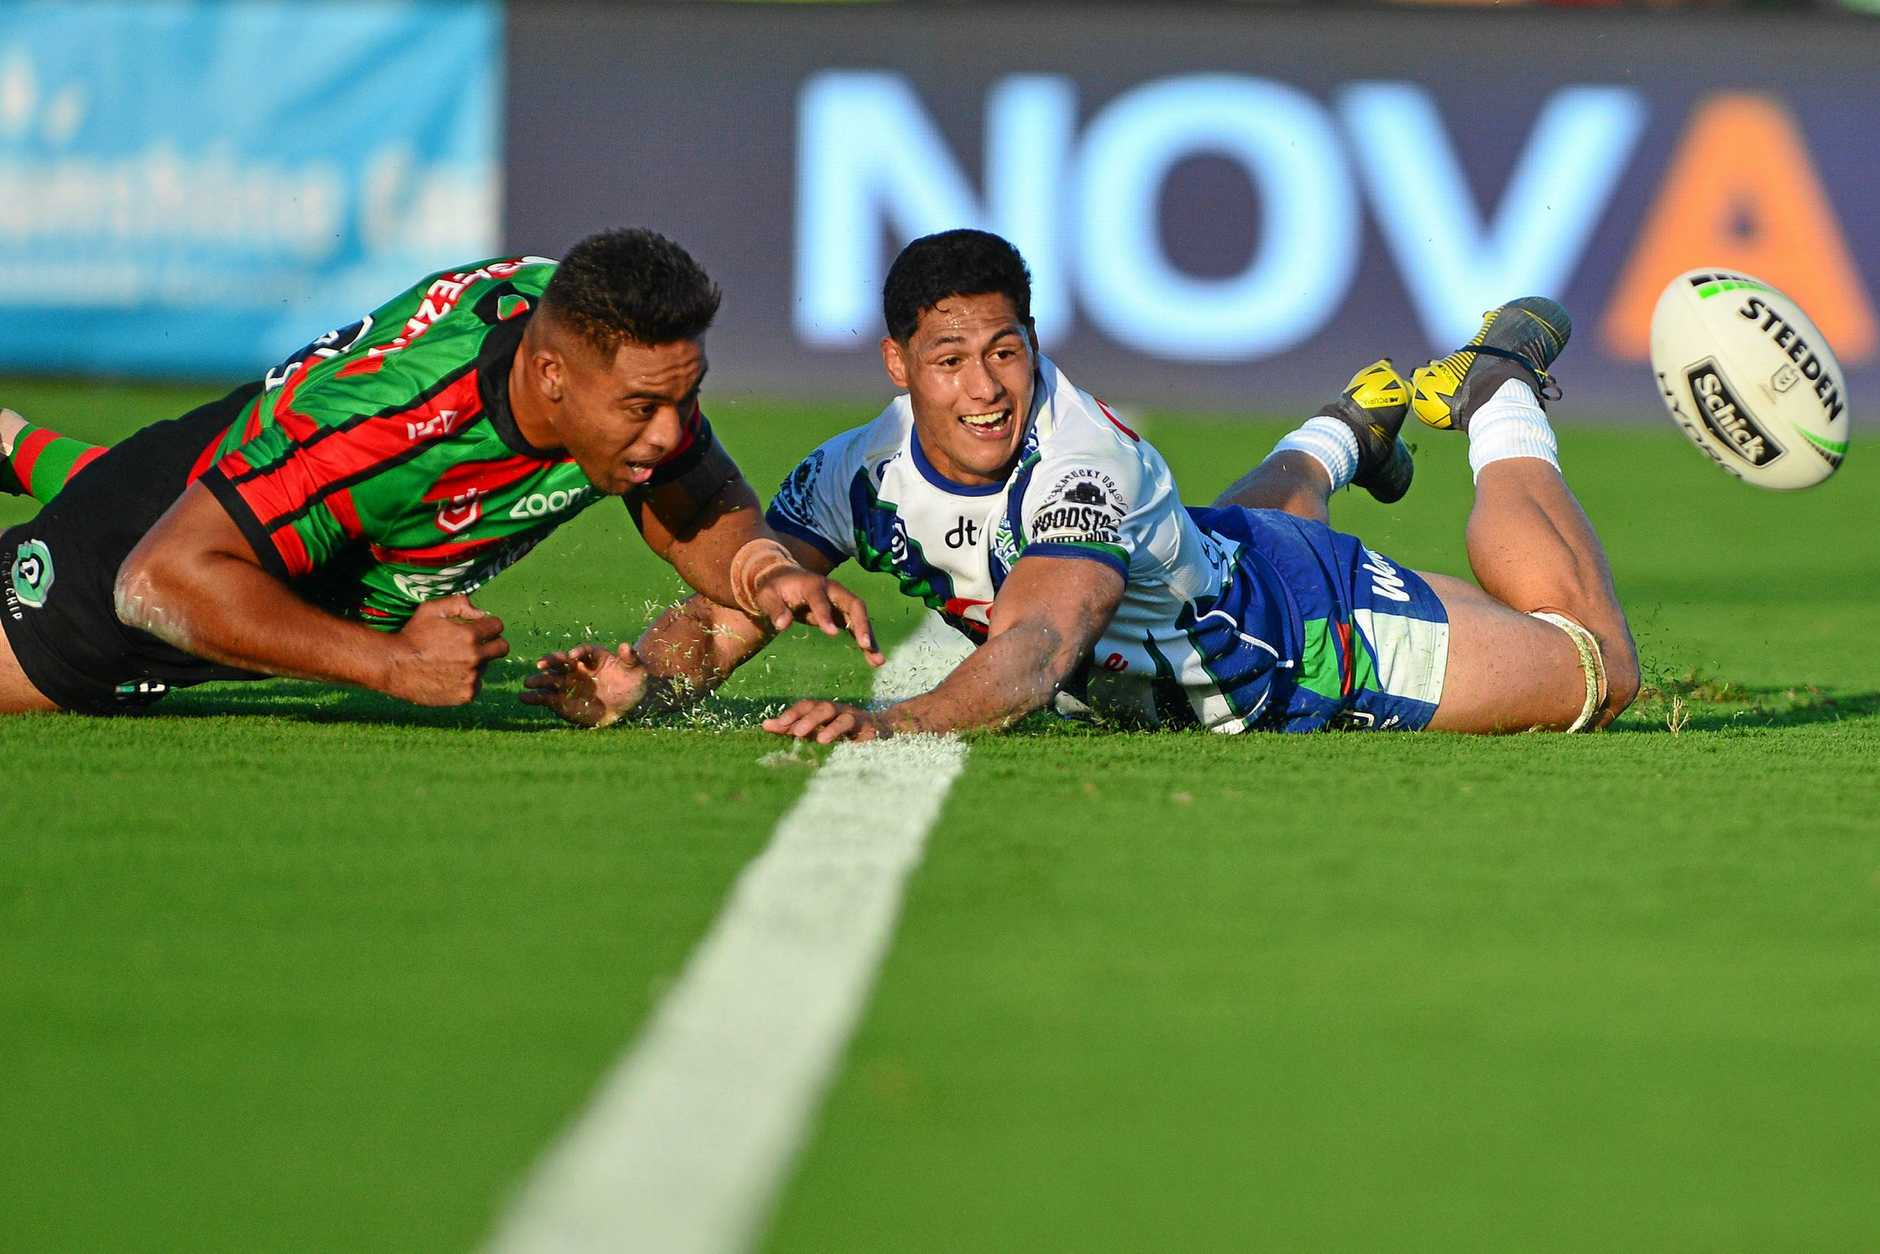 NRL action at Sunshine Coast Stadium between New Zealand Warriors and the South Sydney Rabbitohs. Junior Tatola and Roger Tuivasa-Sheck.